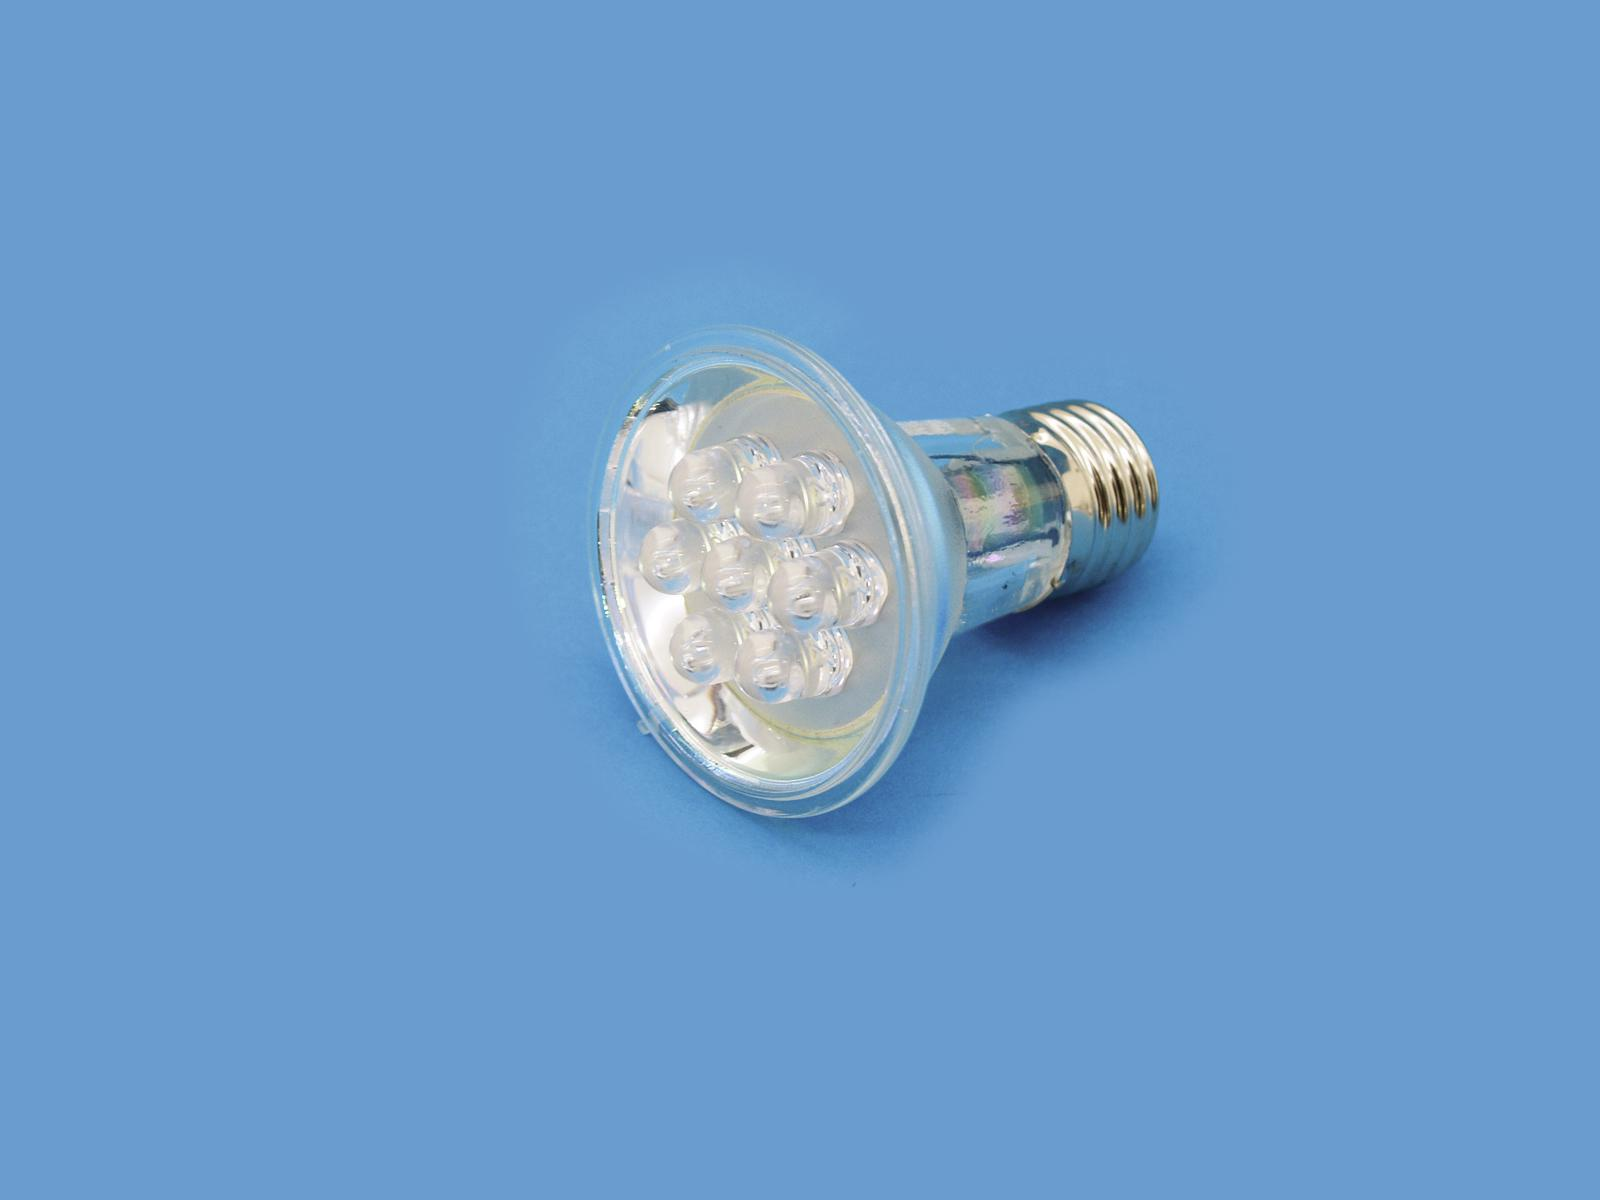 OMNILUX PAR-20 230V E-27 a 7 LED 10mm giallo